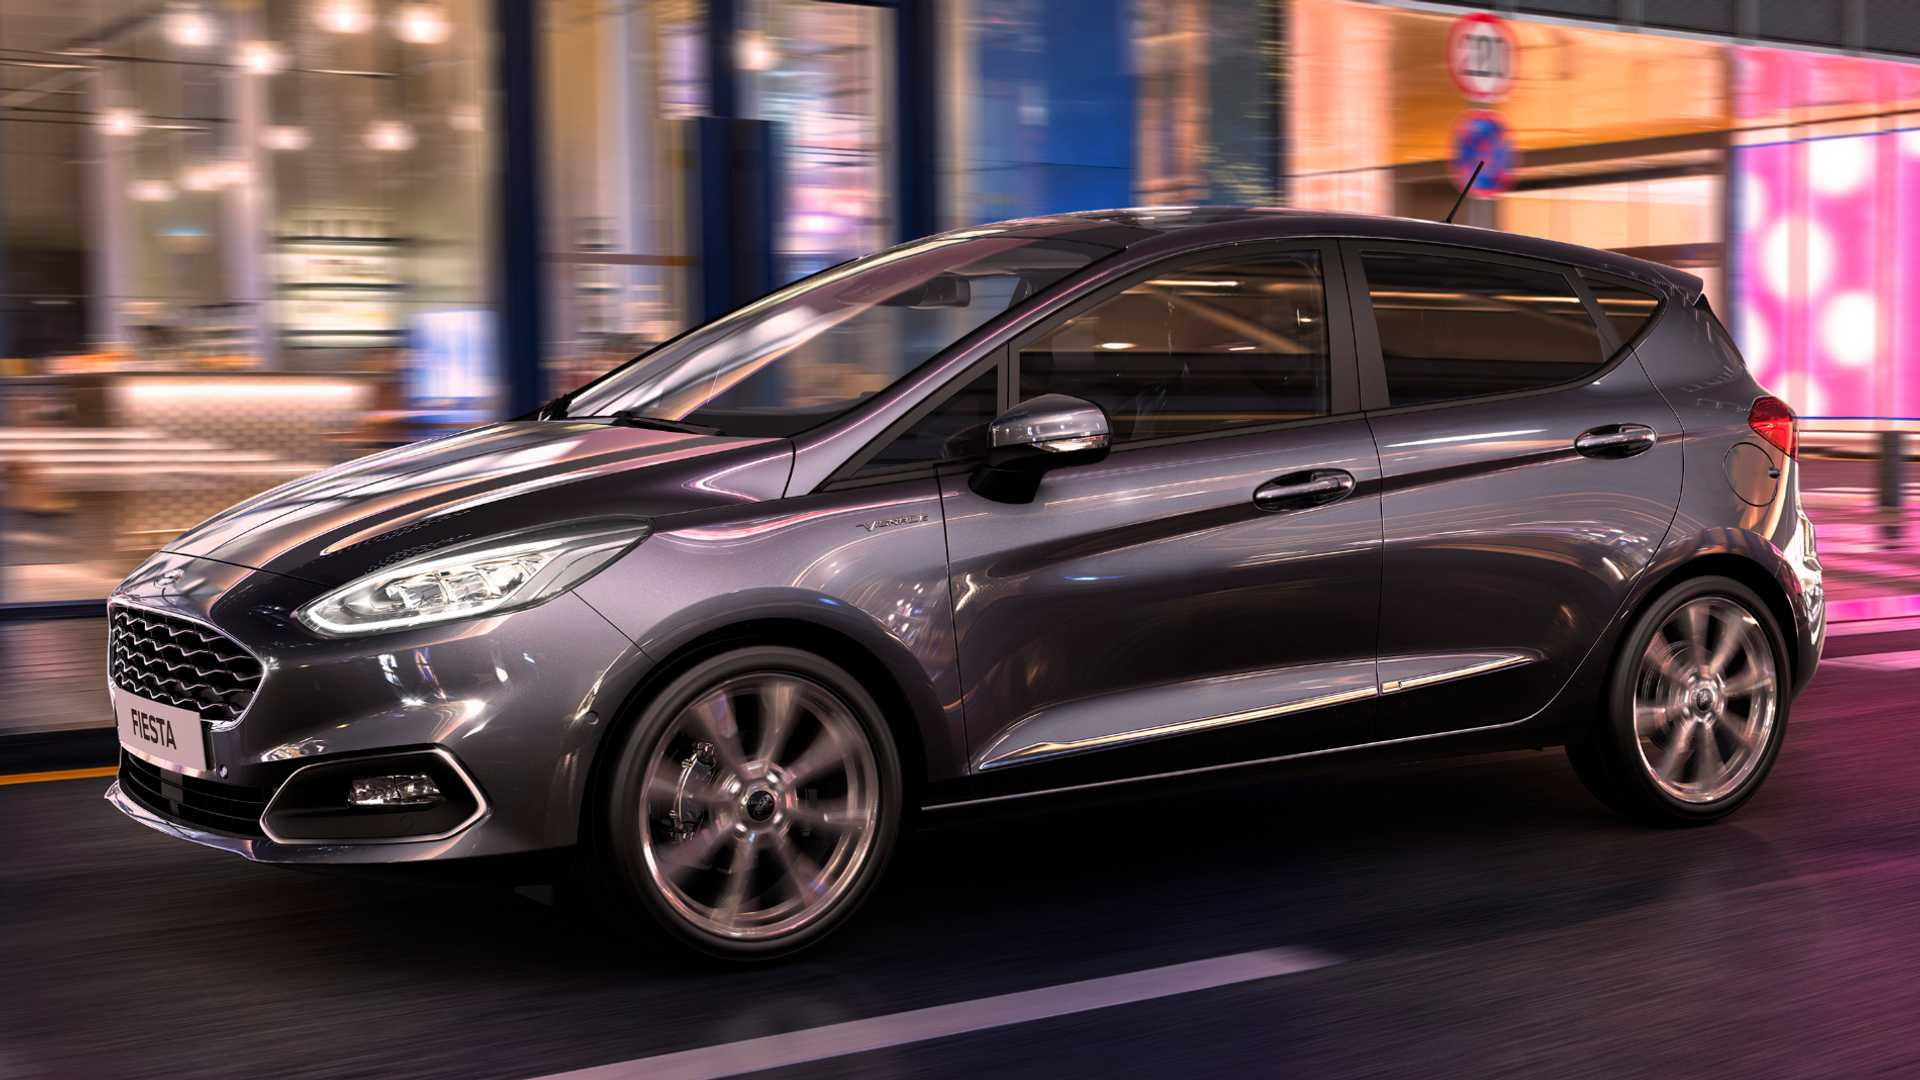 2020 Ford Fiesta Specs and Review